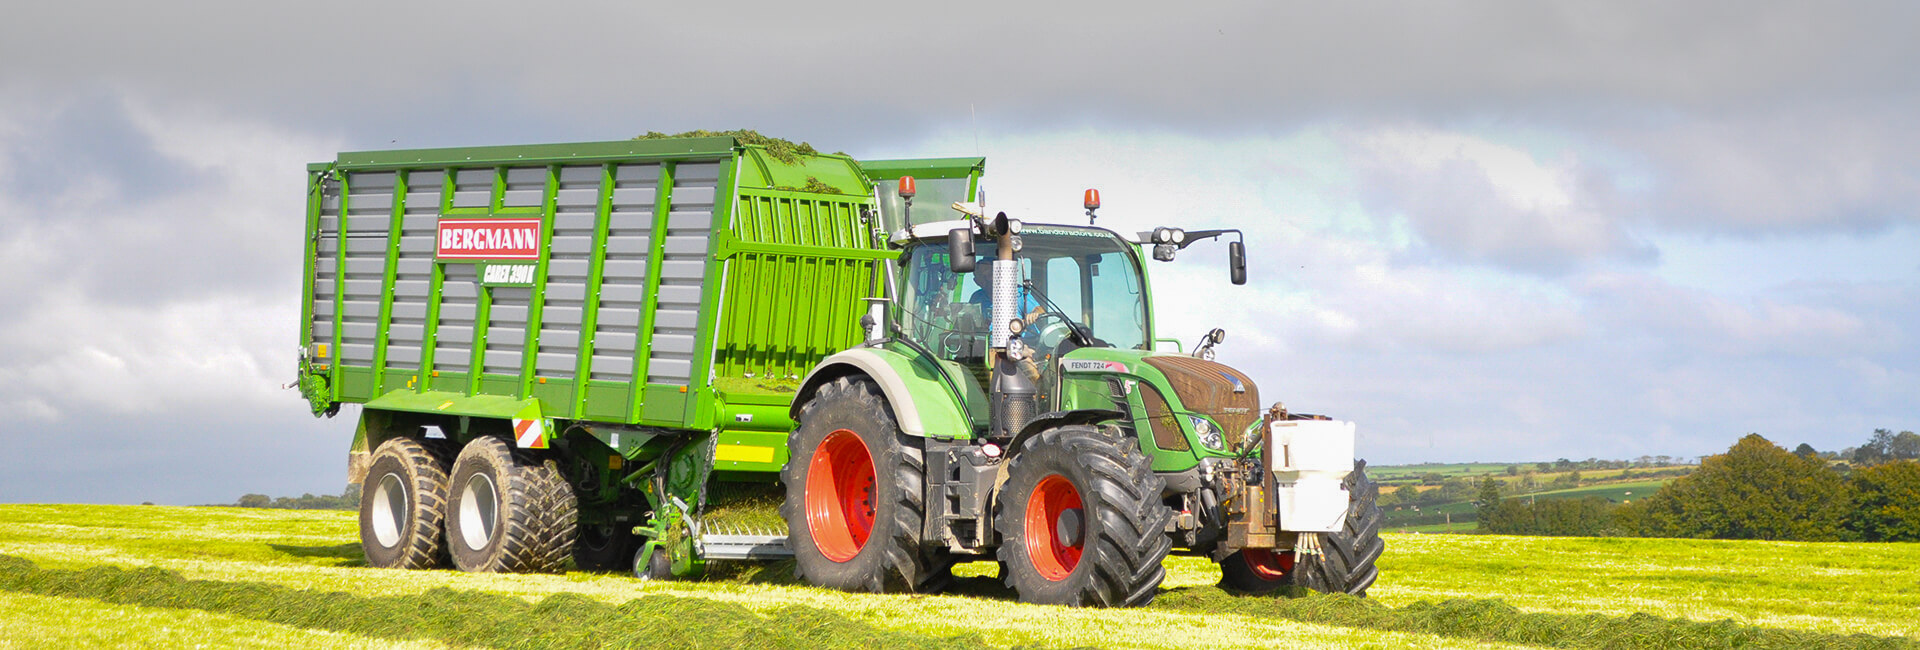 Bergmann forage wagon and fendt tractor